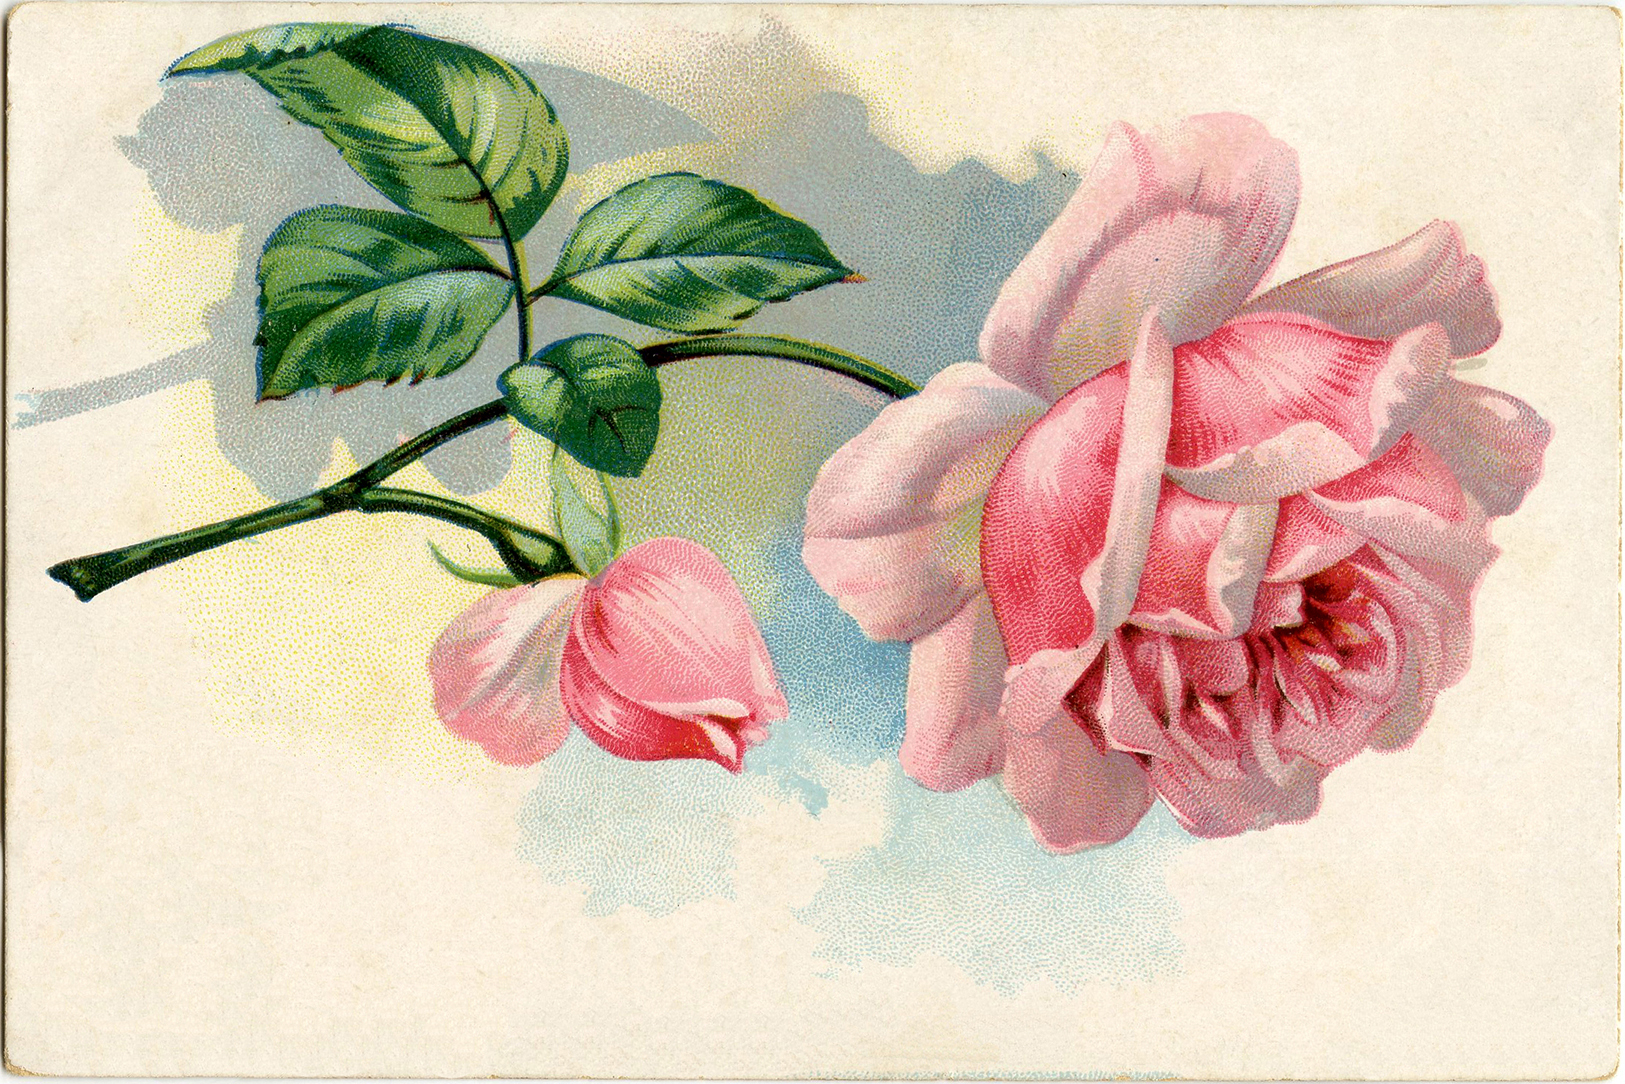 Free Vintage Images Lovely Pink Rose The Graphics Fairy